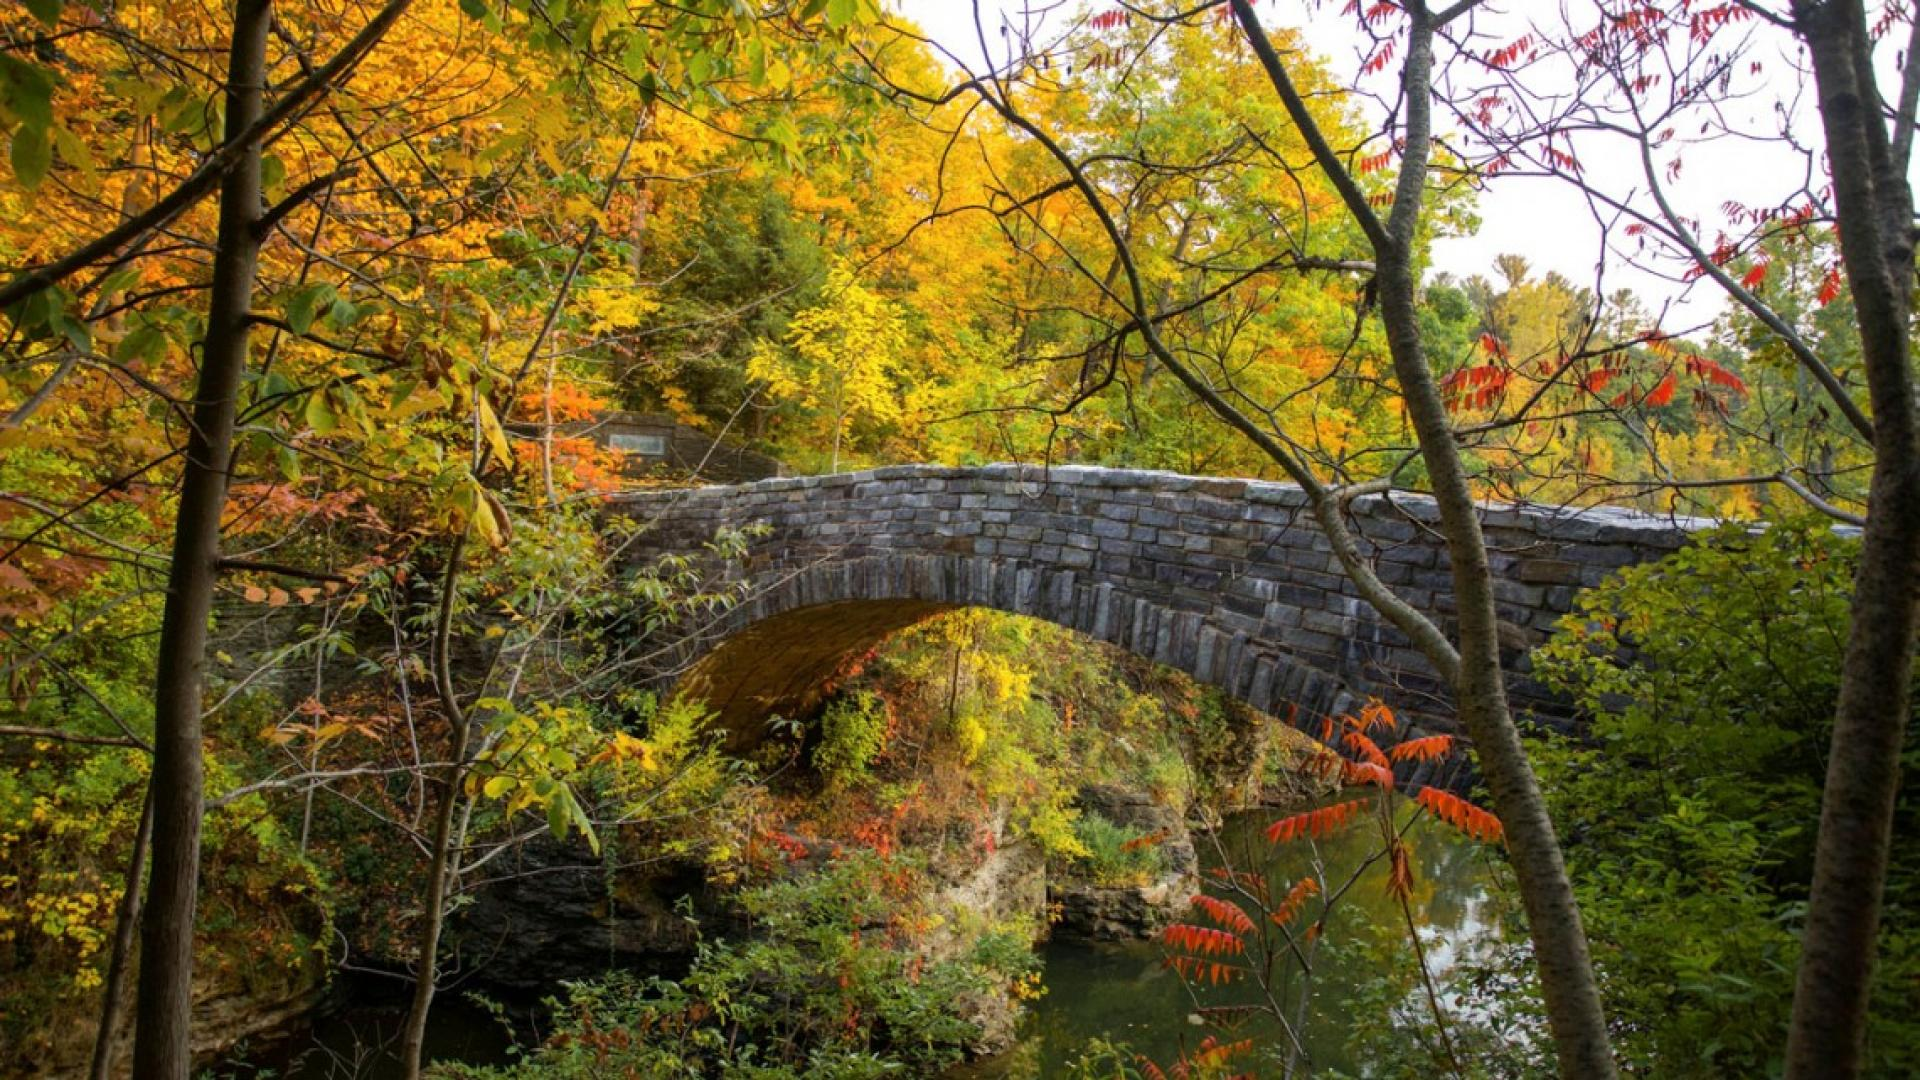 A stone foot bridge surrounded by foliage